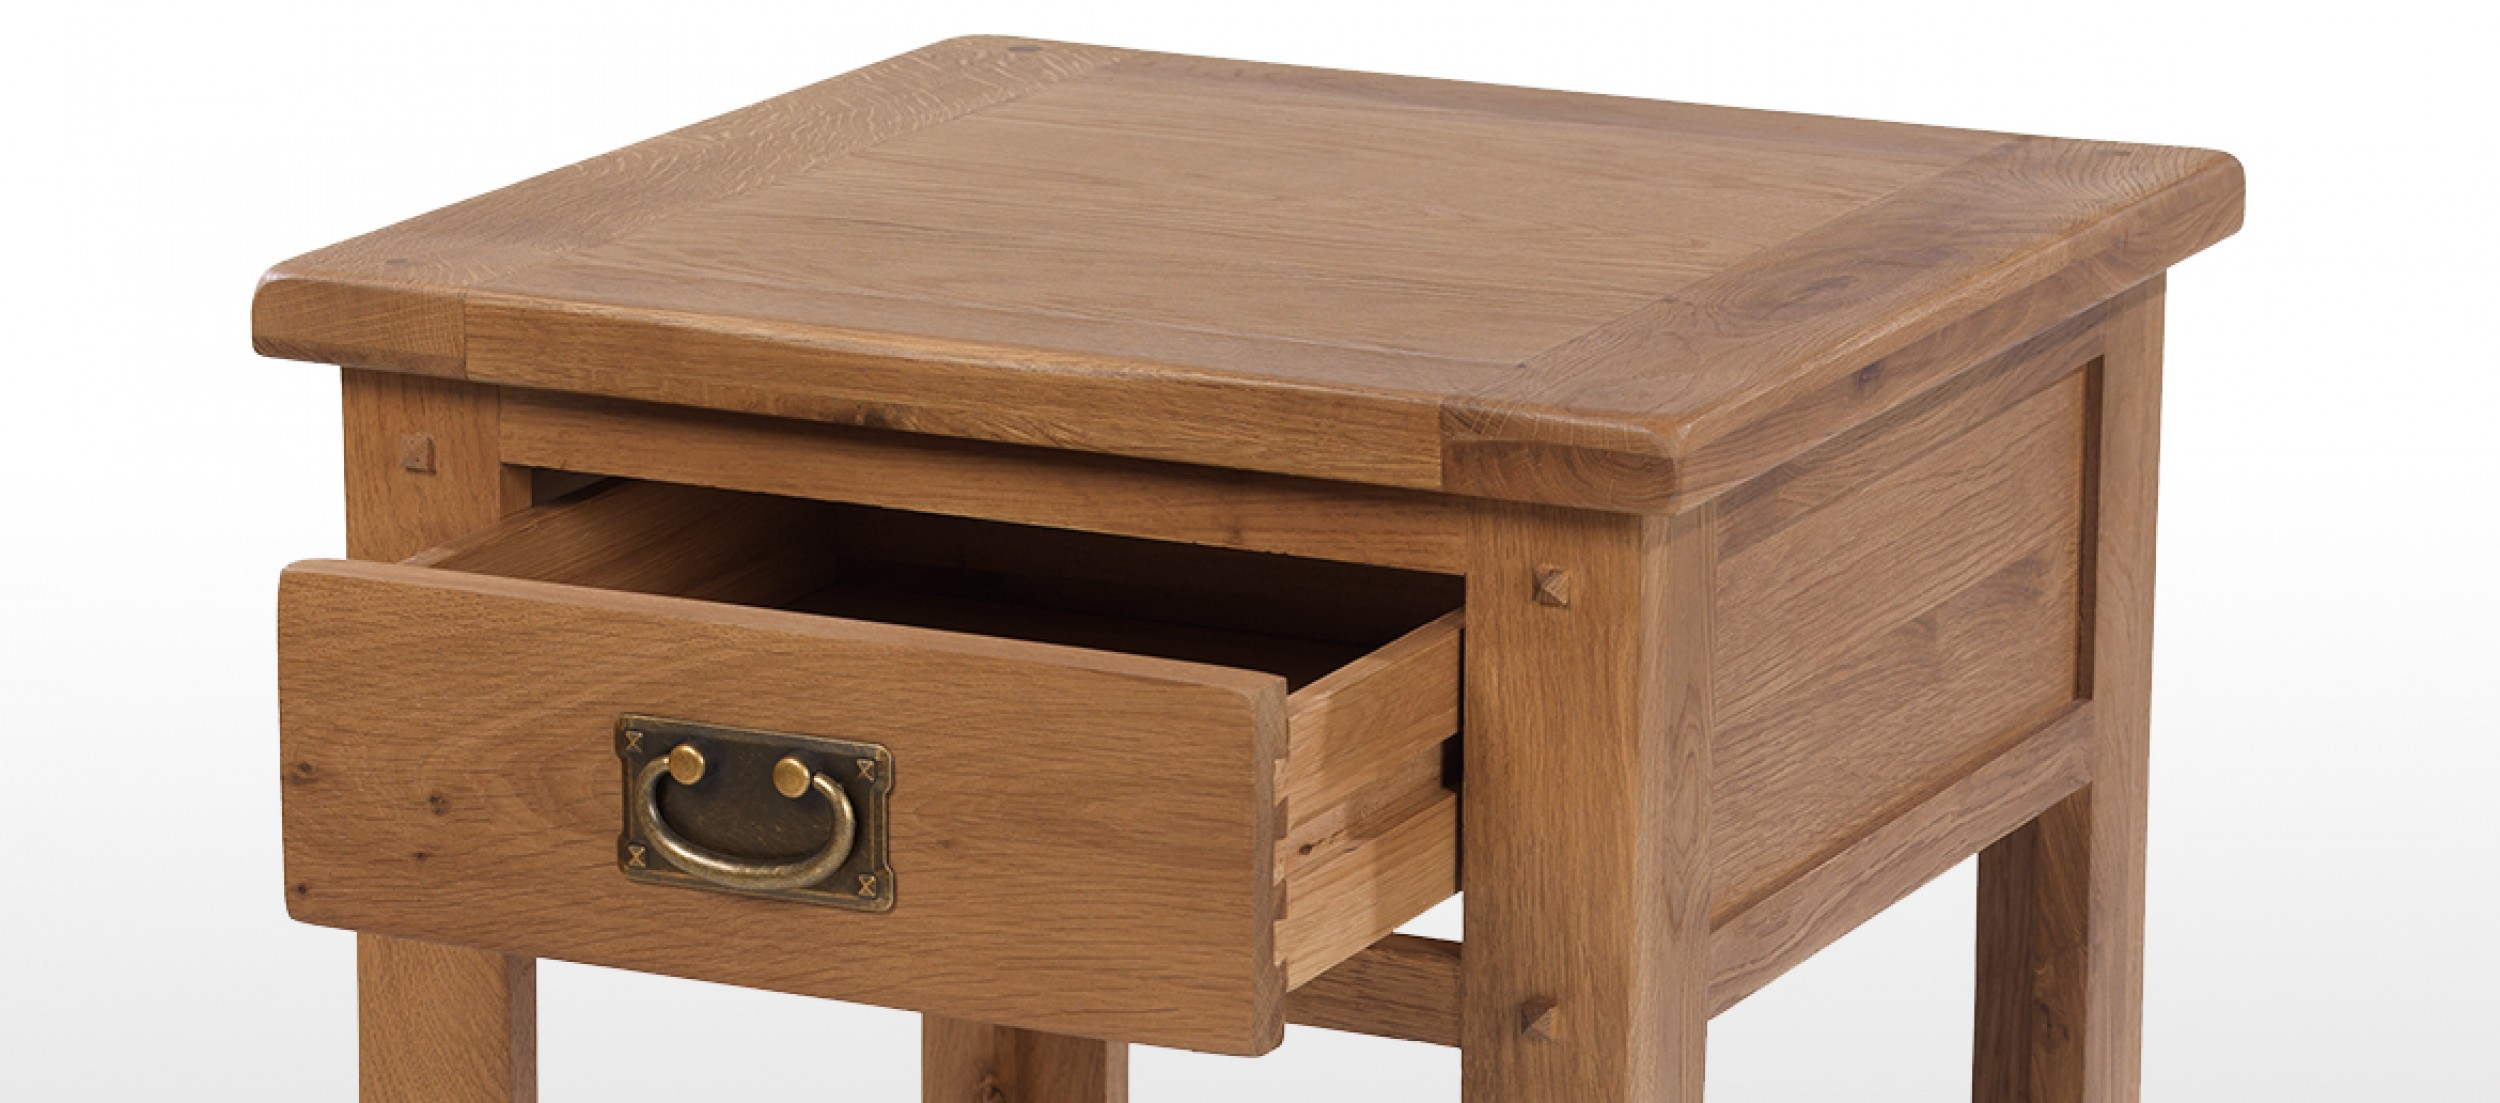 Rustic oak 1 drawer bedside table quercus living for 1 drawer bedside table